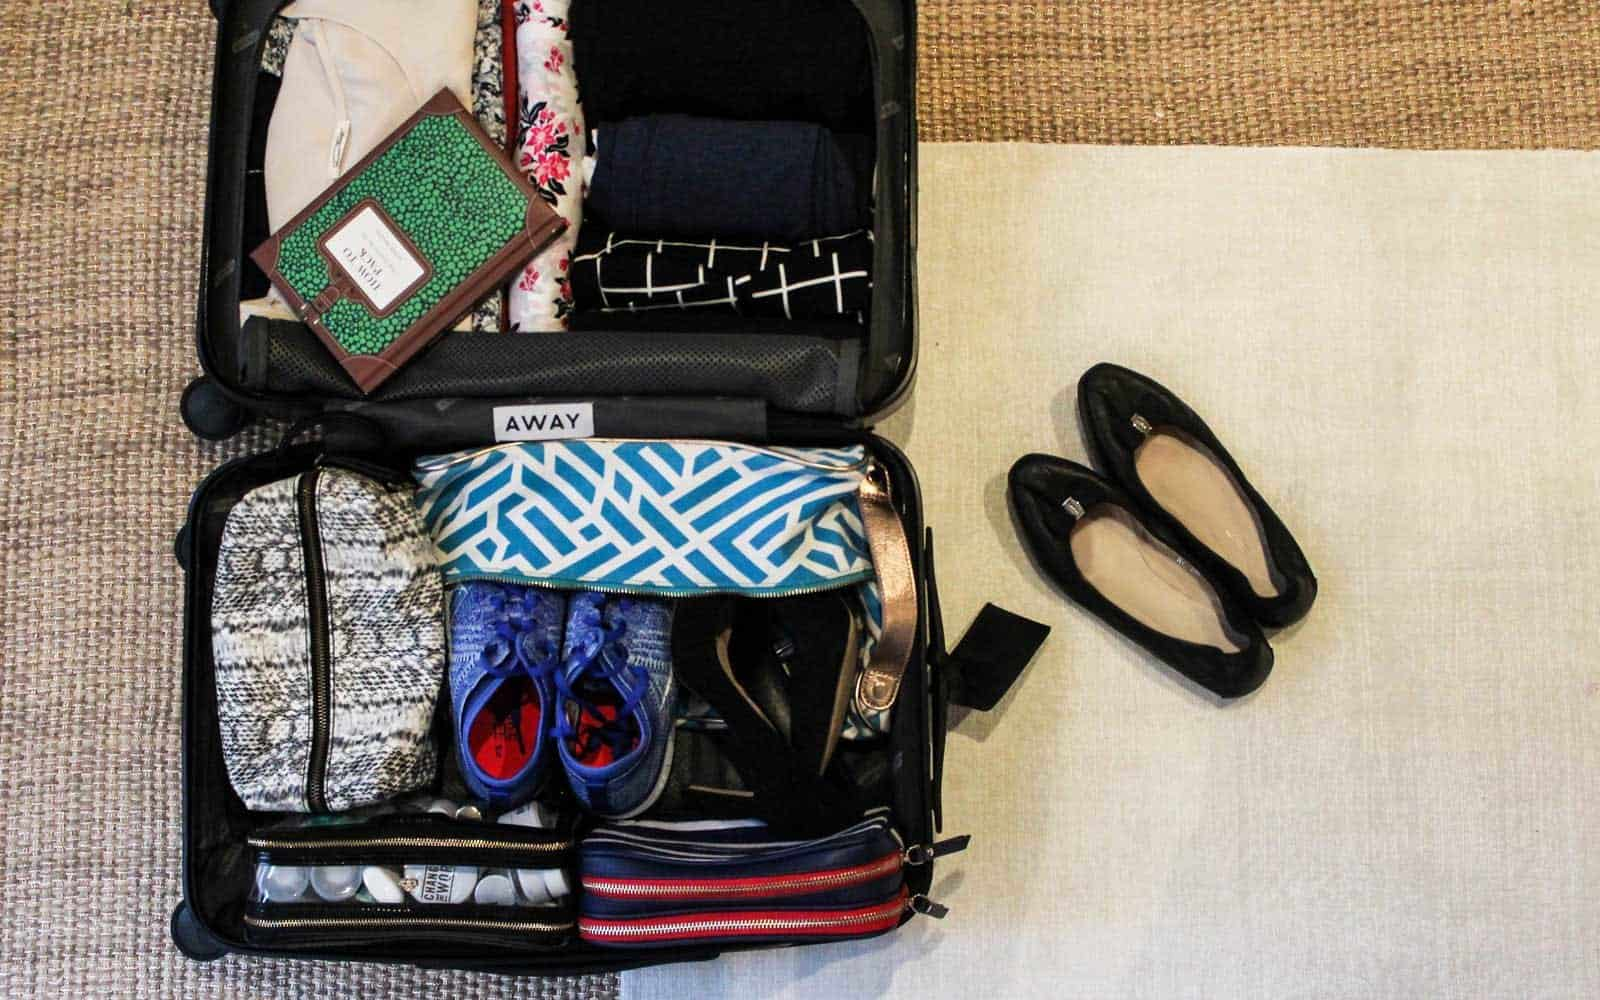 Start with a packing list